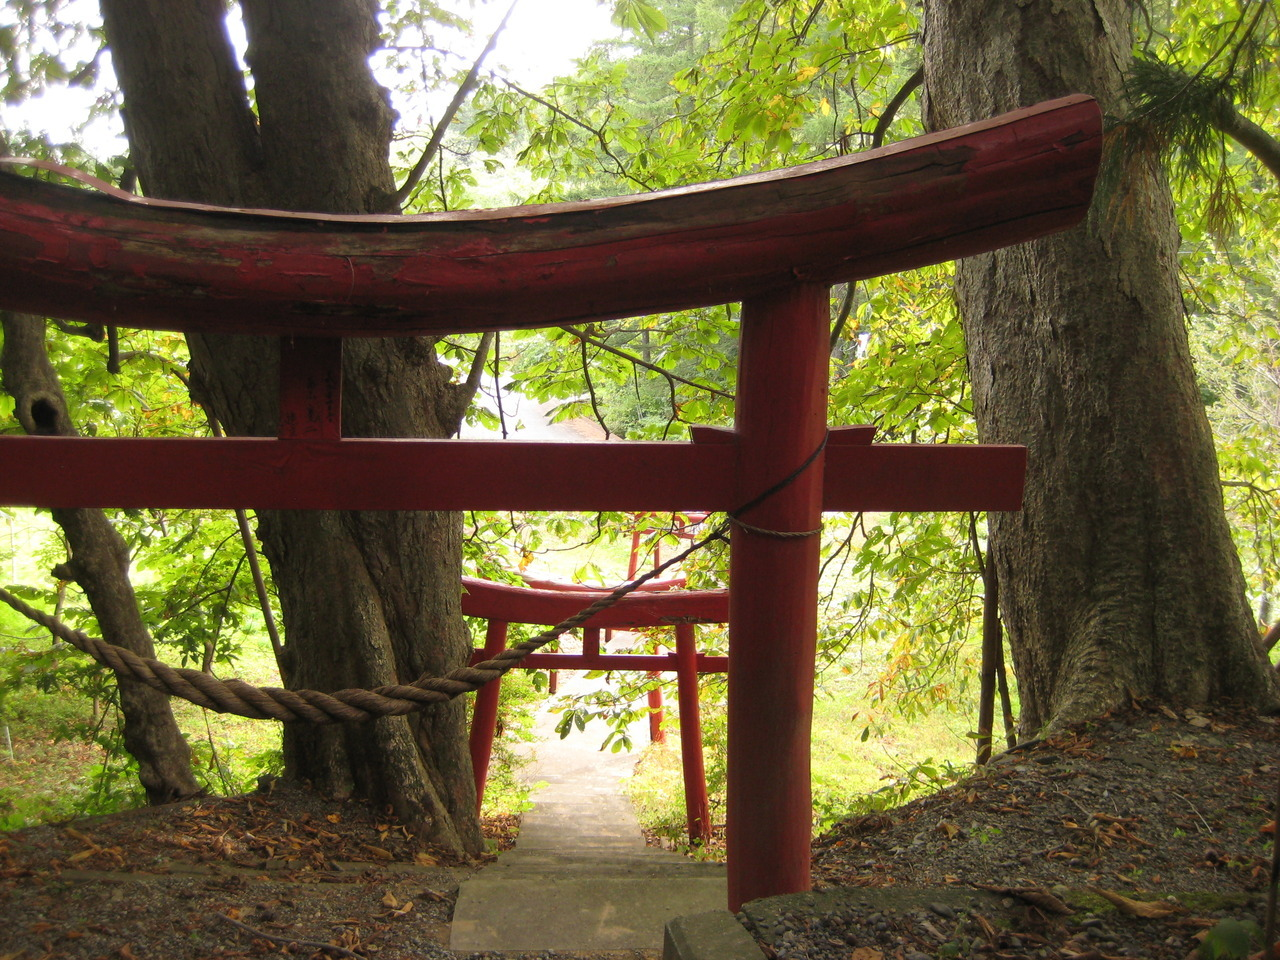 Tori gate and chestnut trees at Tanohata's Ryden shrine.